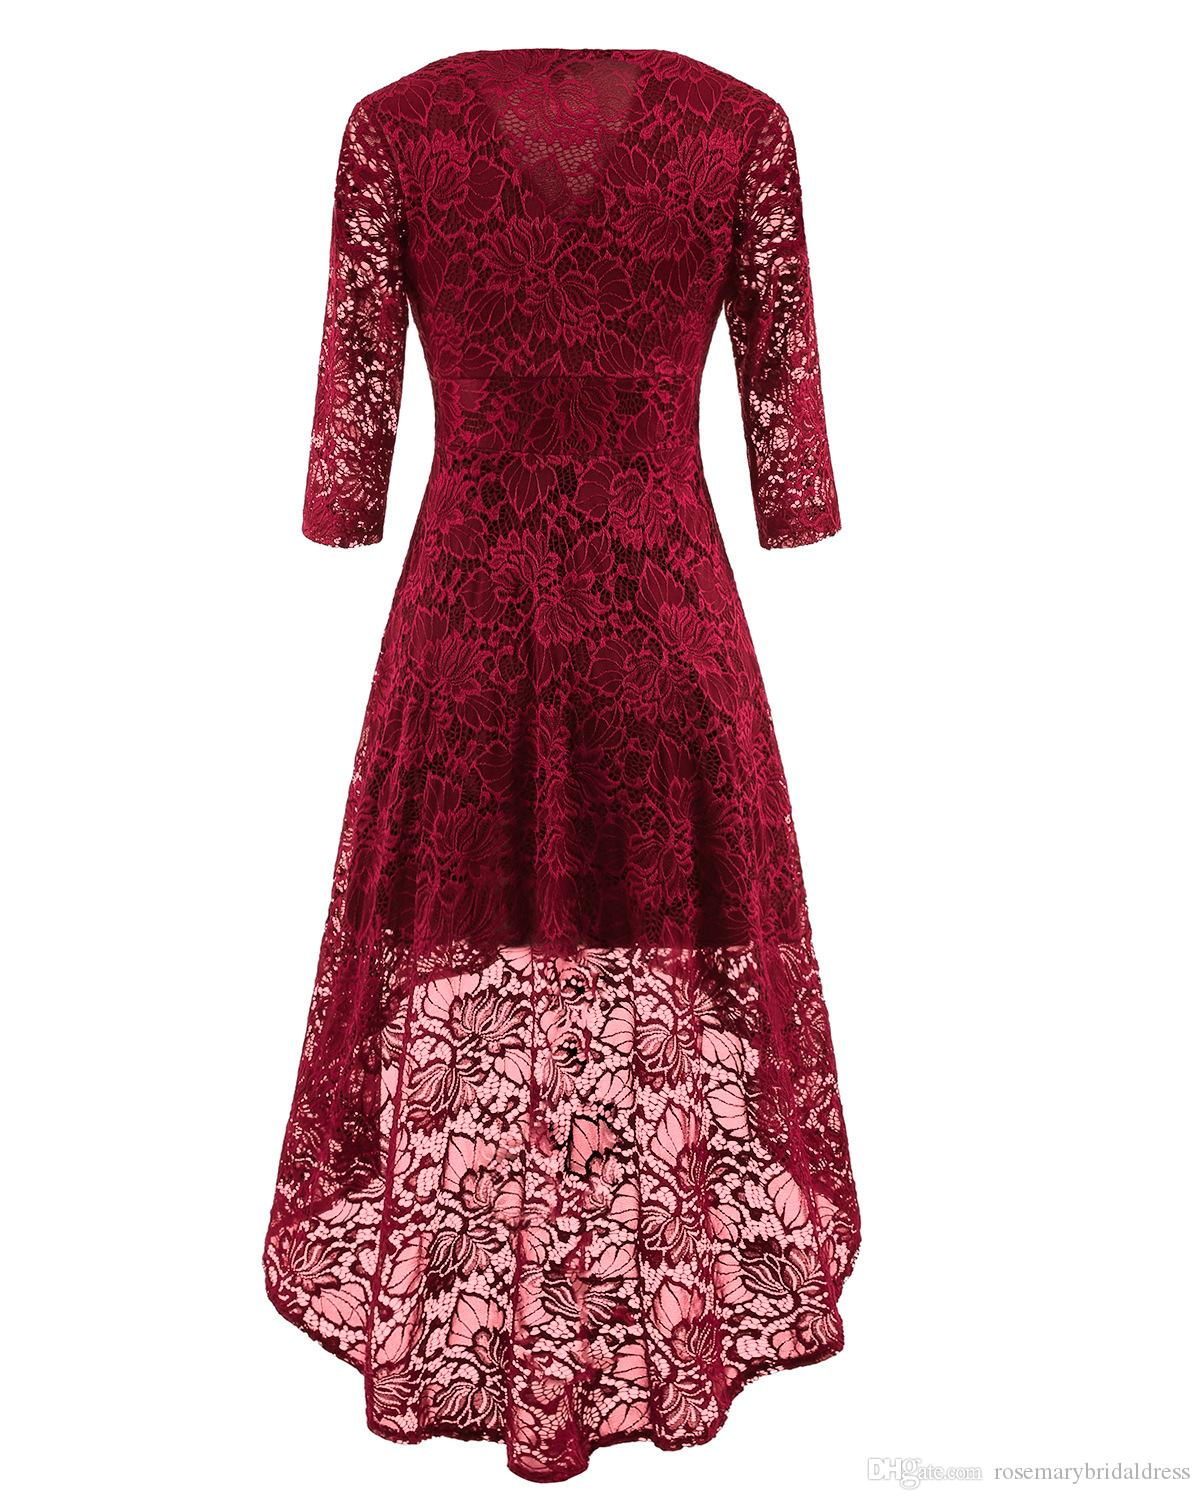 In stock Lace Party Dresses High Low Cheap Long sleeve V-Neck Short Prom Dresses Homecoming Gowns